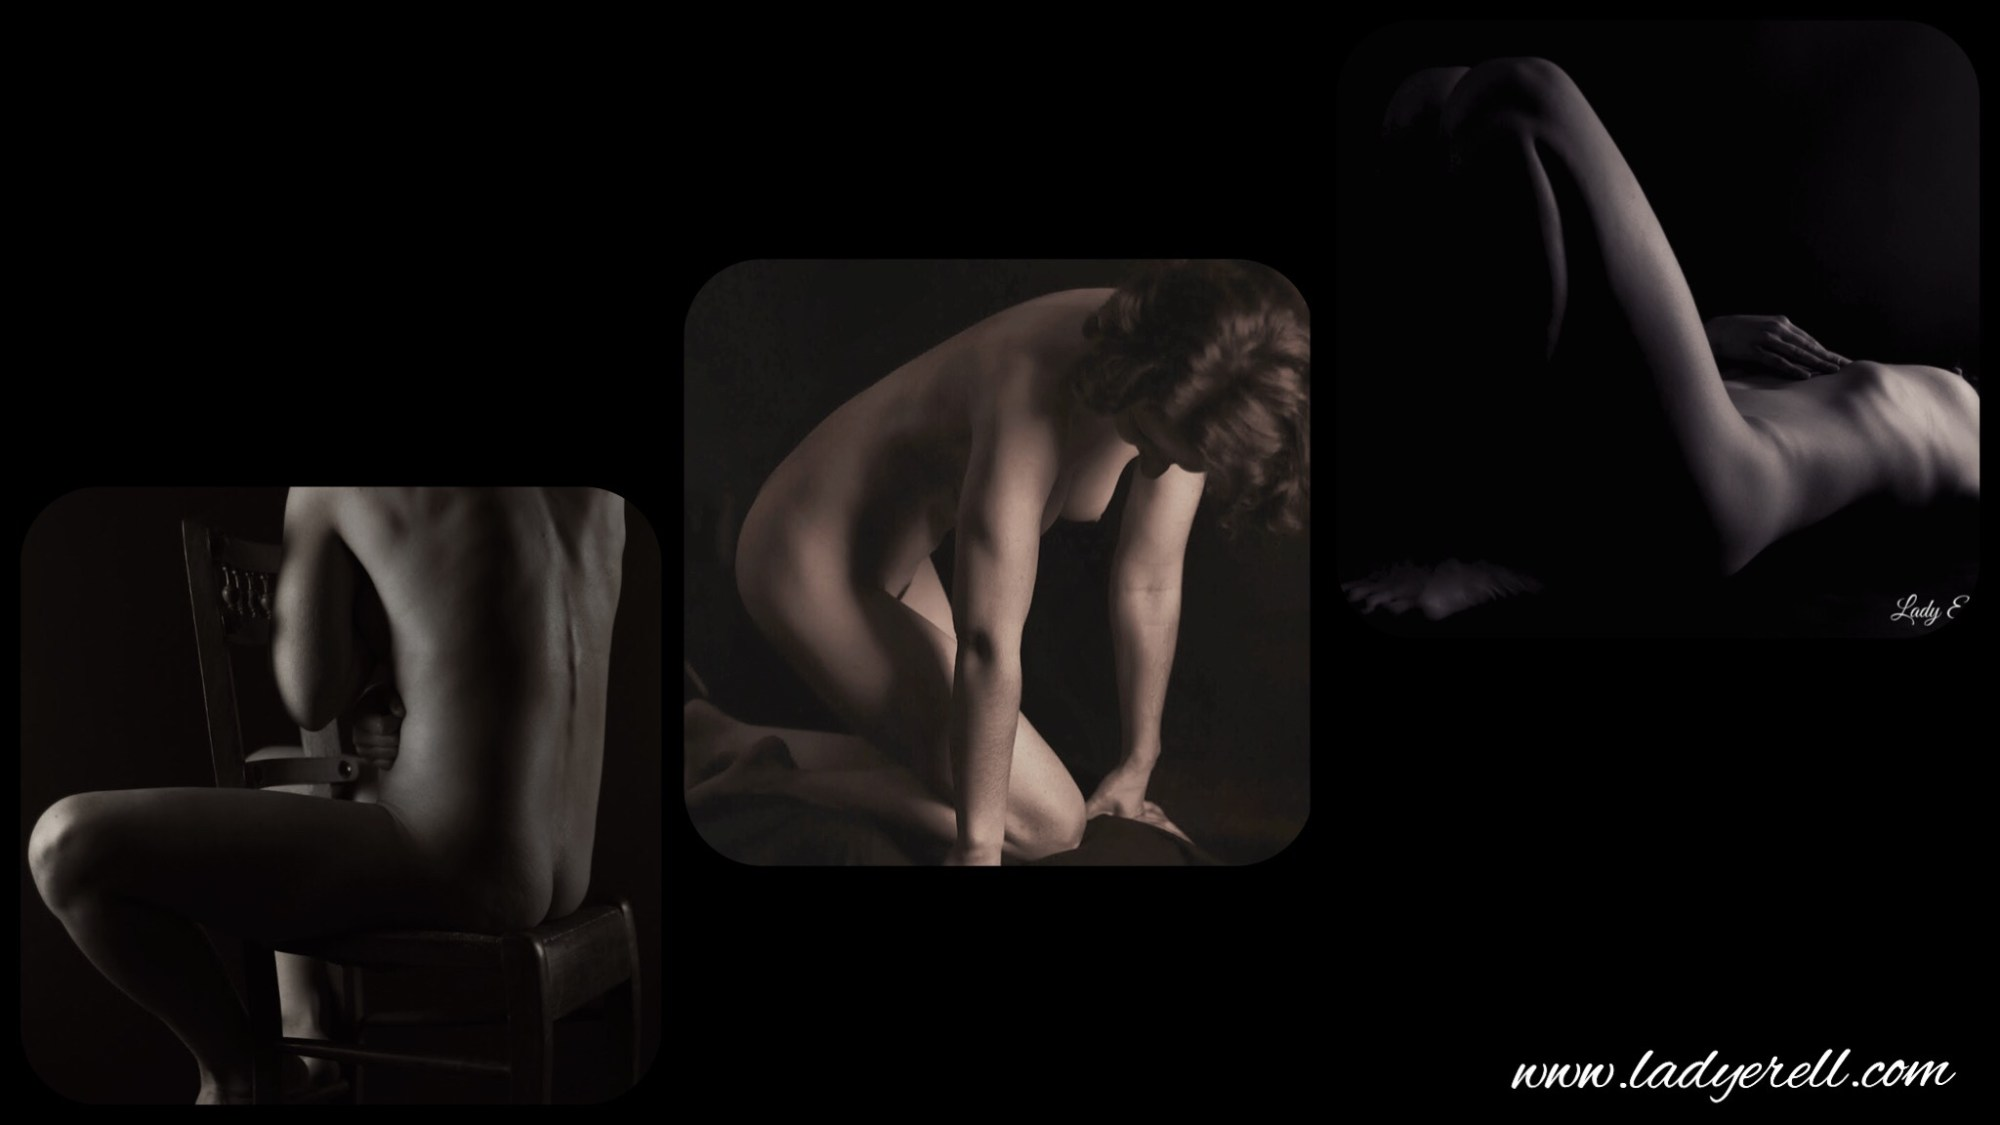 Shooting by Lady Érèll femme nue nude triptyque